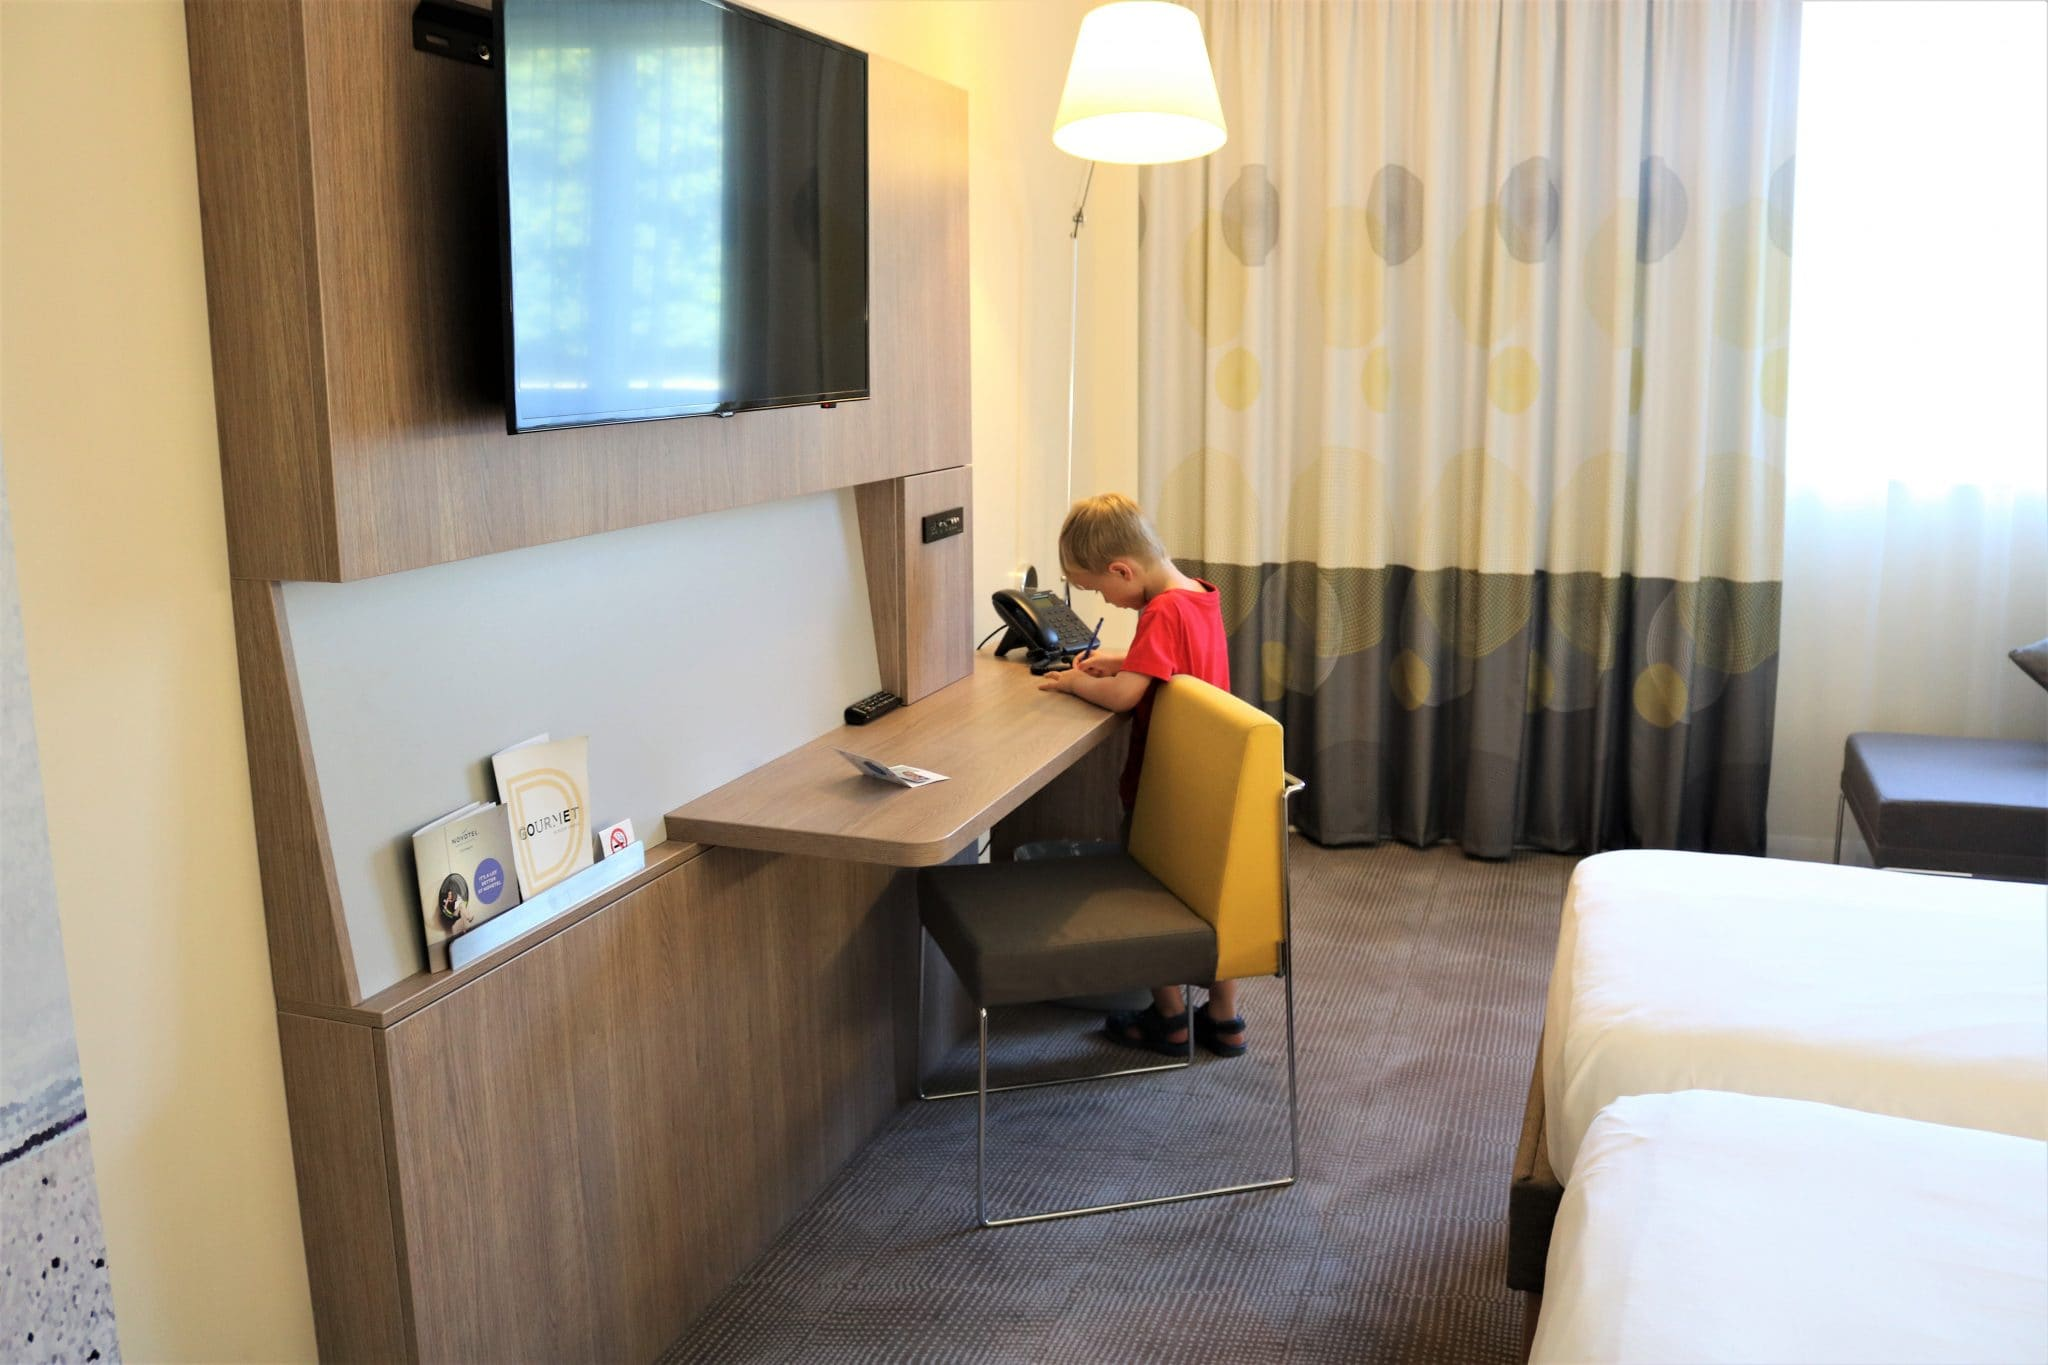 Novotel Hotel Stevenage Review Of Our Stay Room And